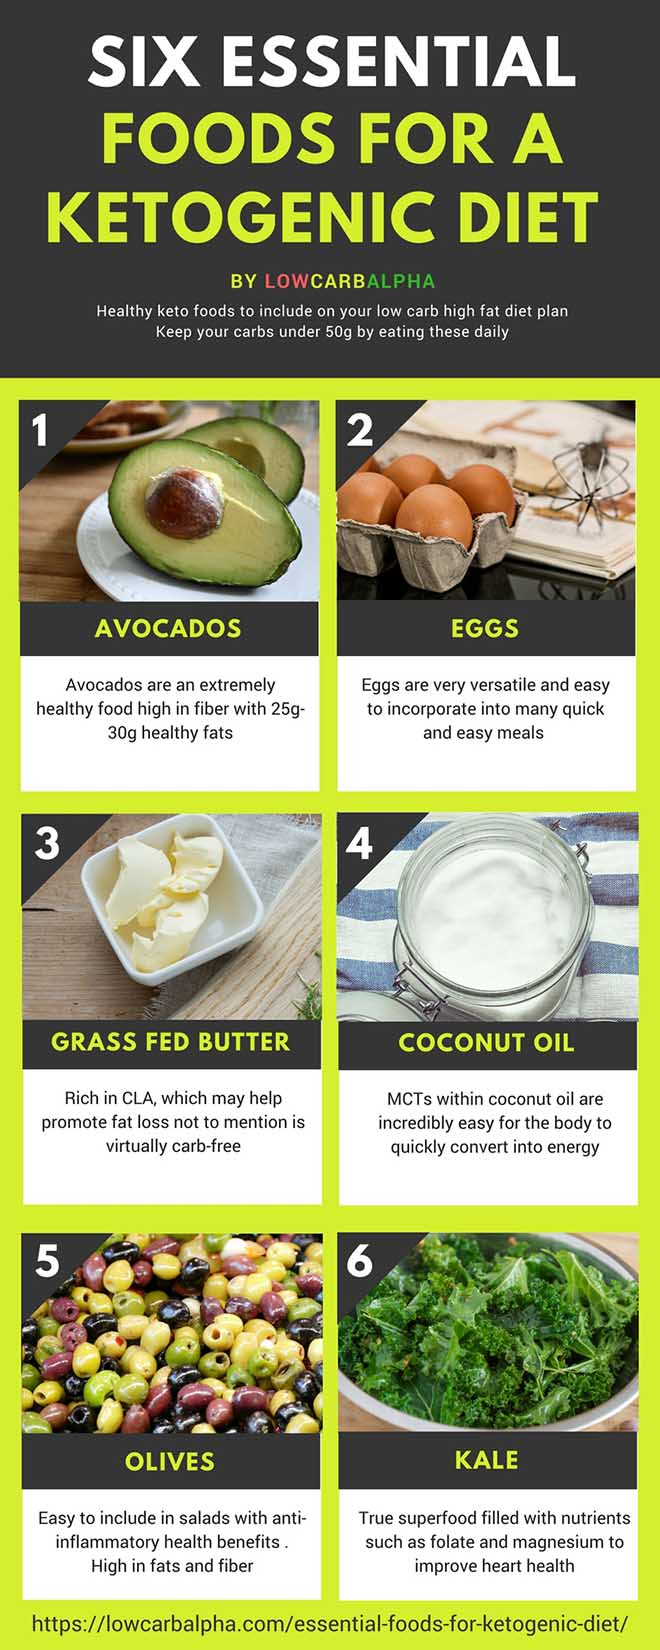 Six essential foods for a Ketogenic Diet by lowcarbalpha